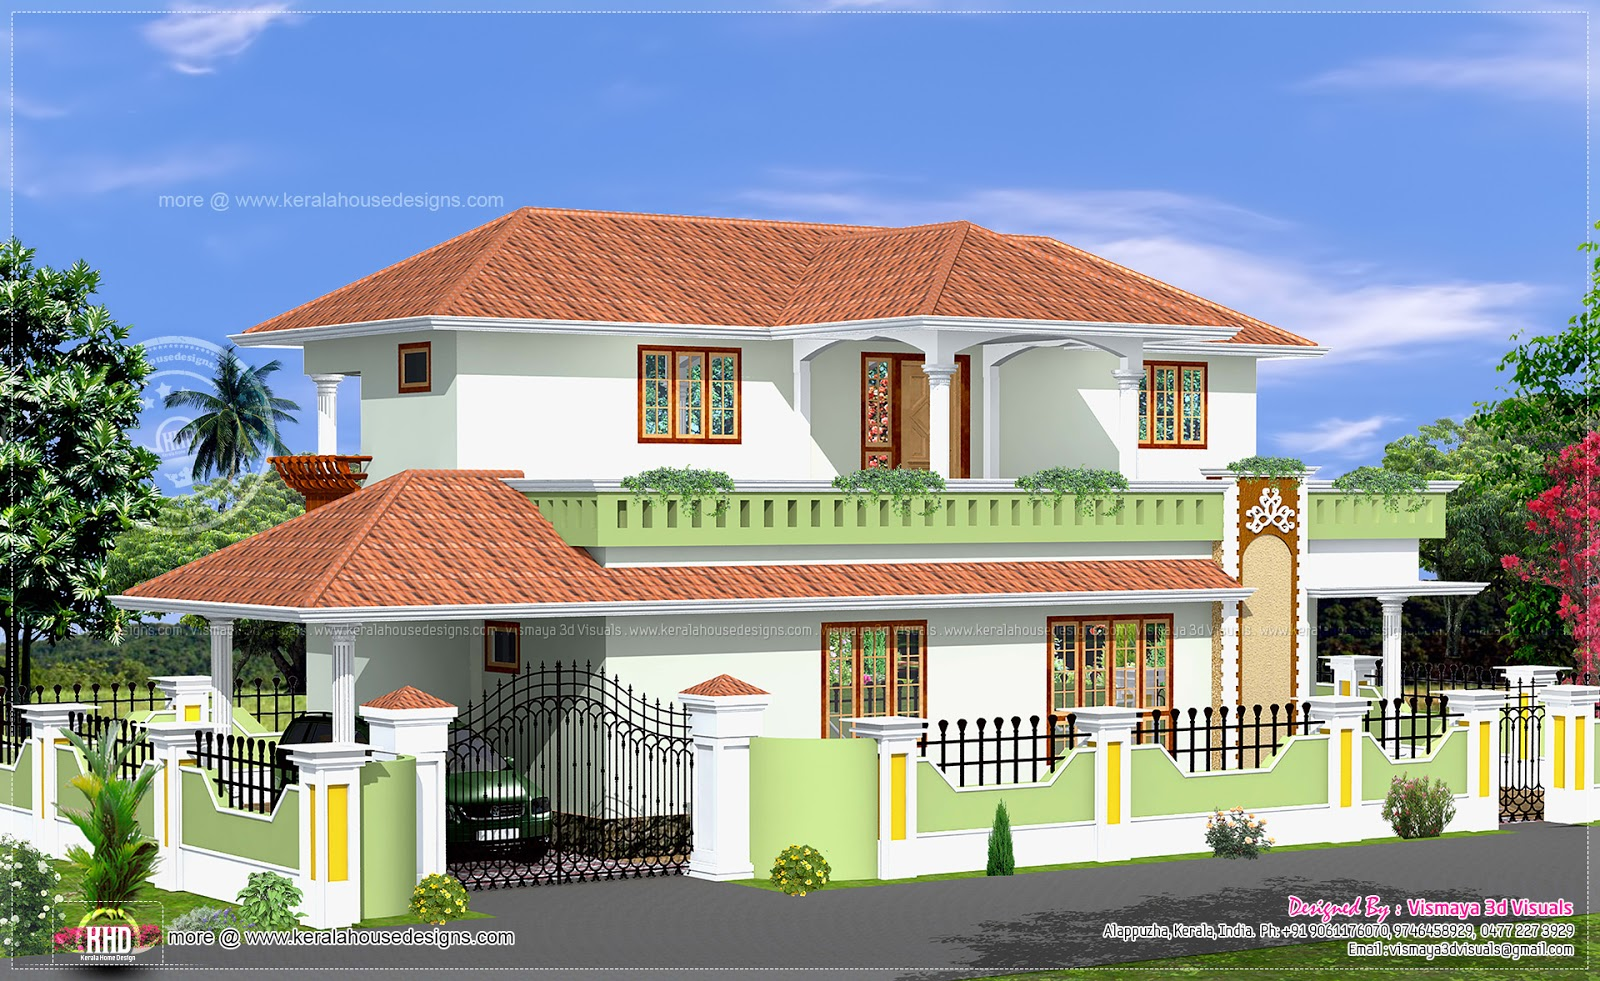 Simple house designs kerala style home design and style for House of home